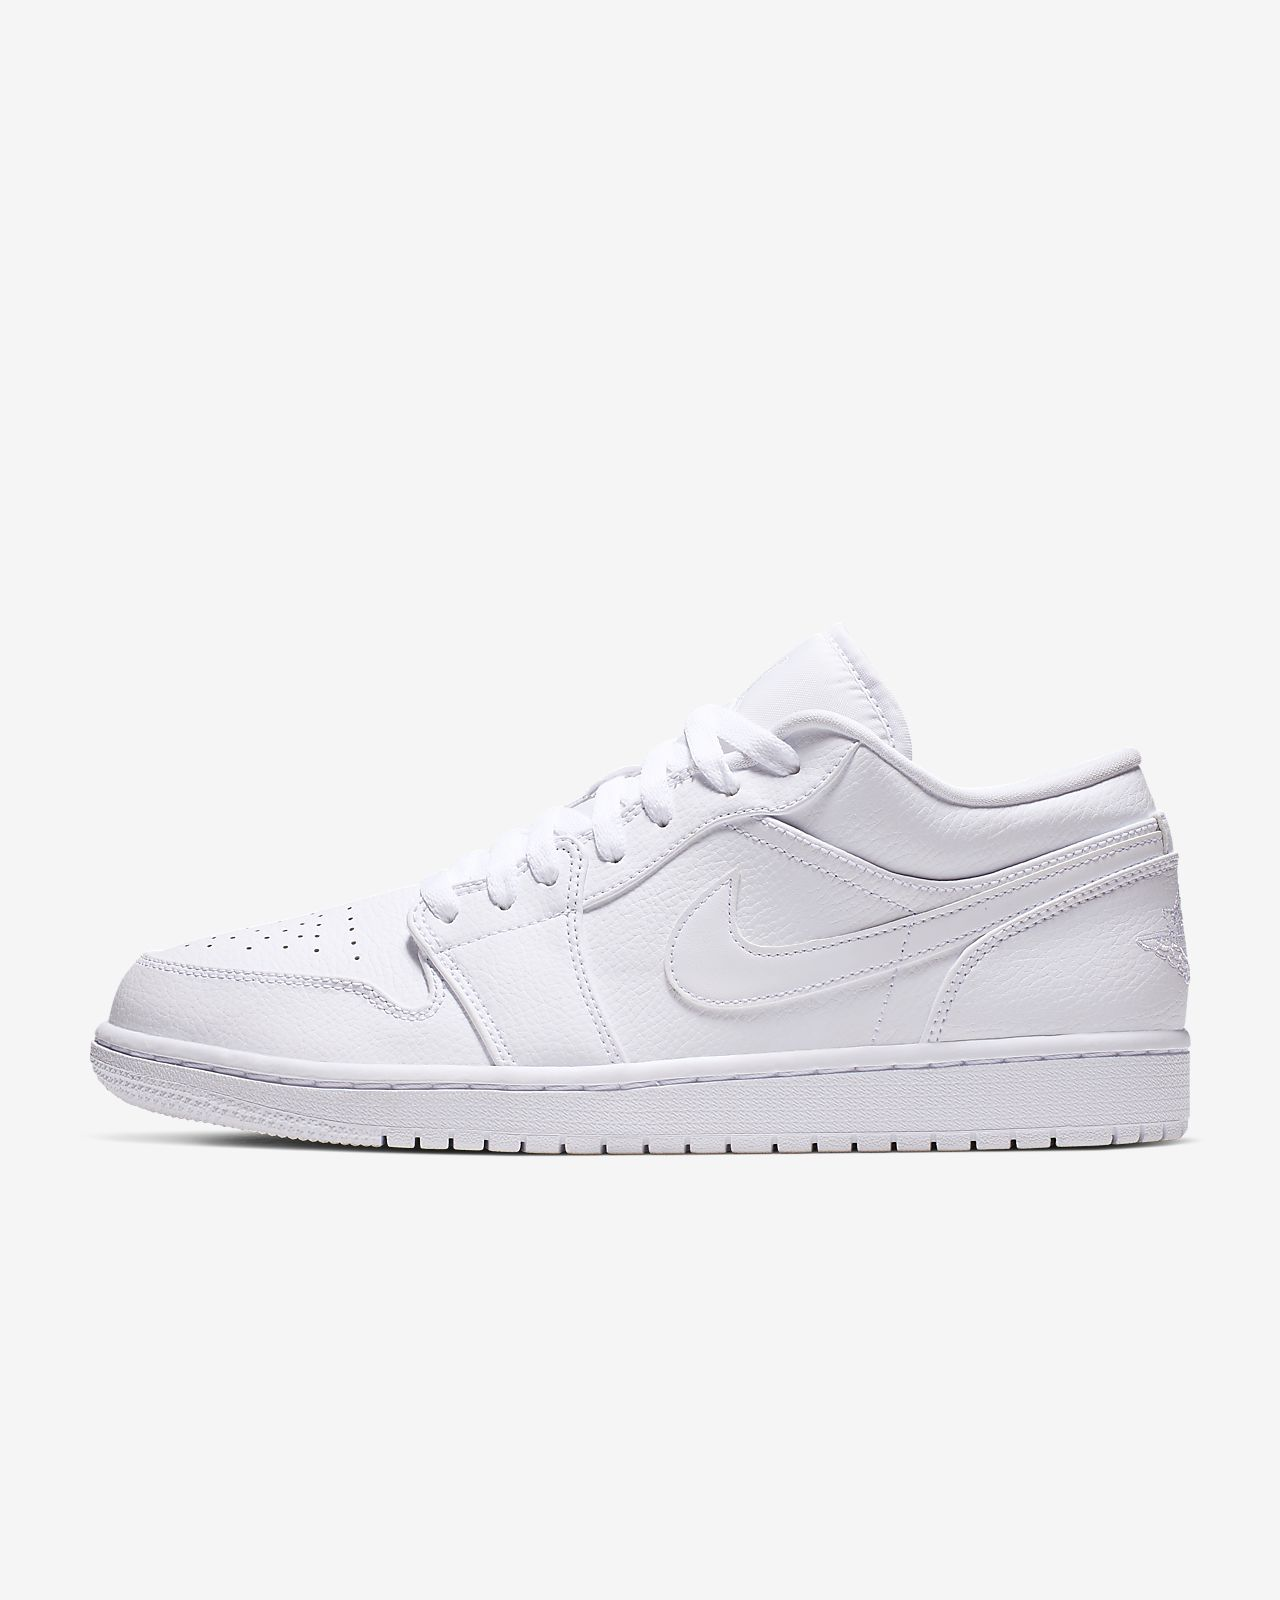 Air Jordan 1 Low Men's Shoe